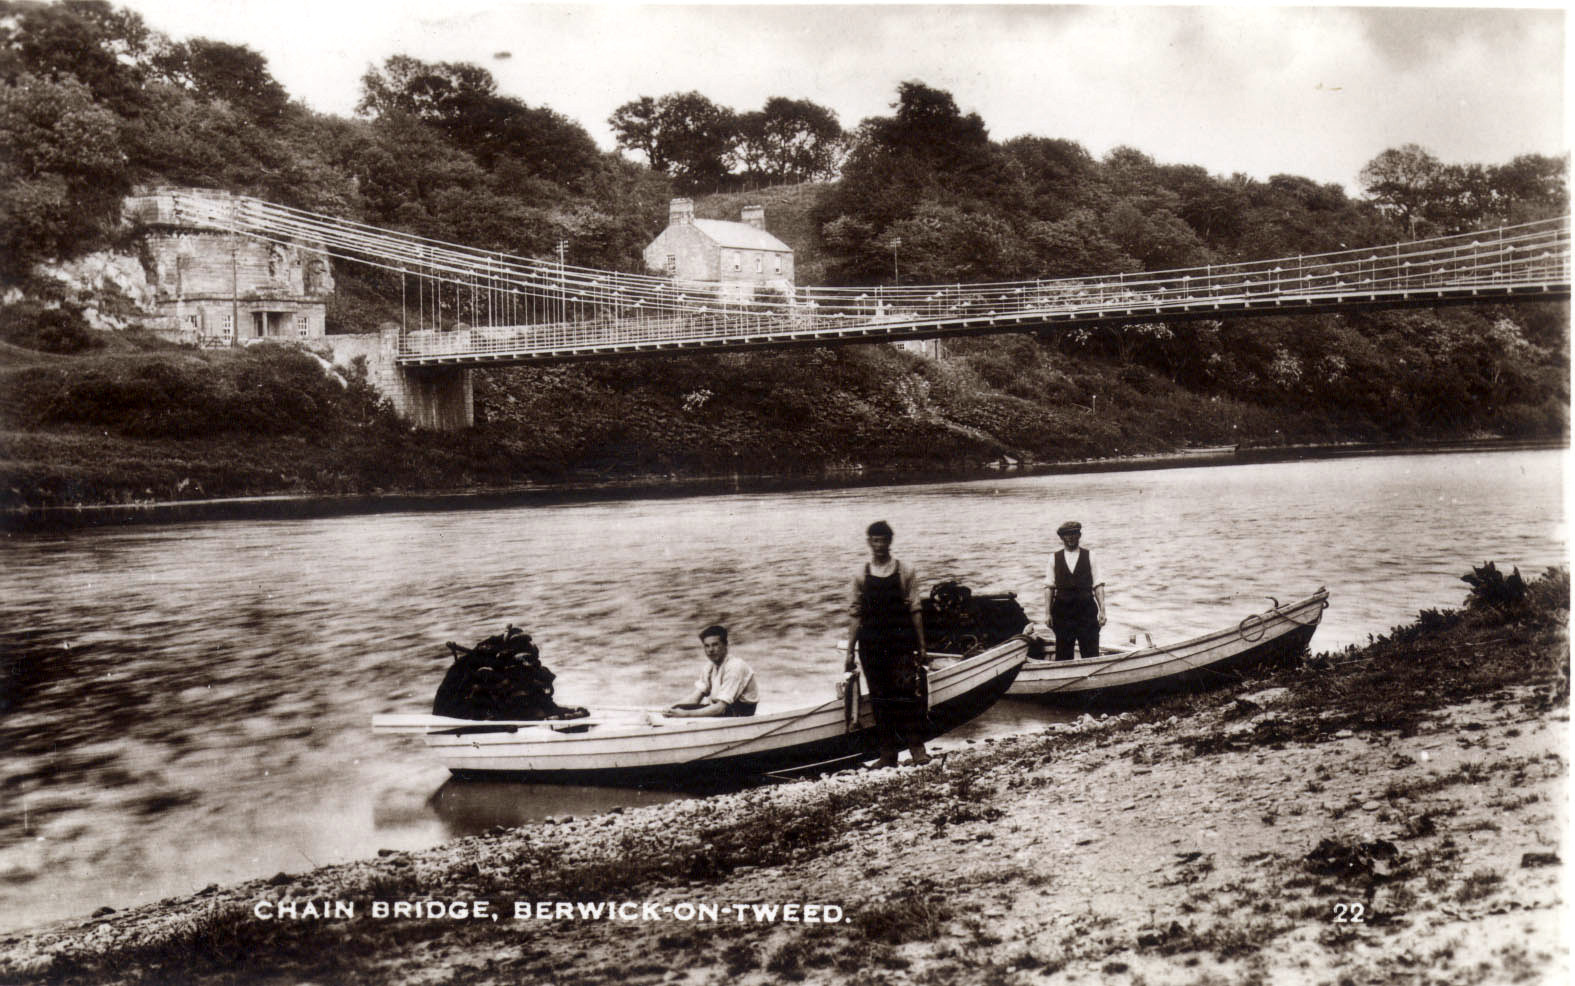 Old photograph of salmon fishermen below Chain Bride, near Horncliffe, Berwick-upon-Tweed. © Berwick Record Office, BRO 426 1125.